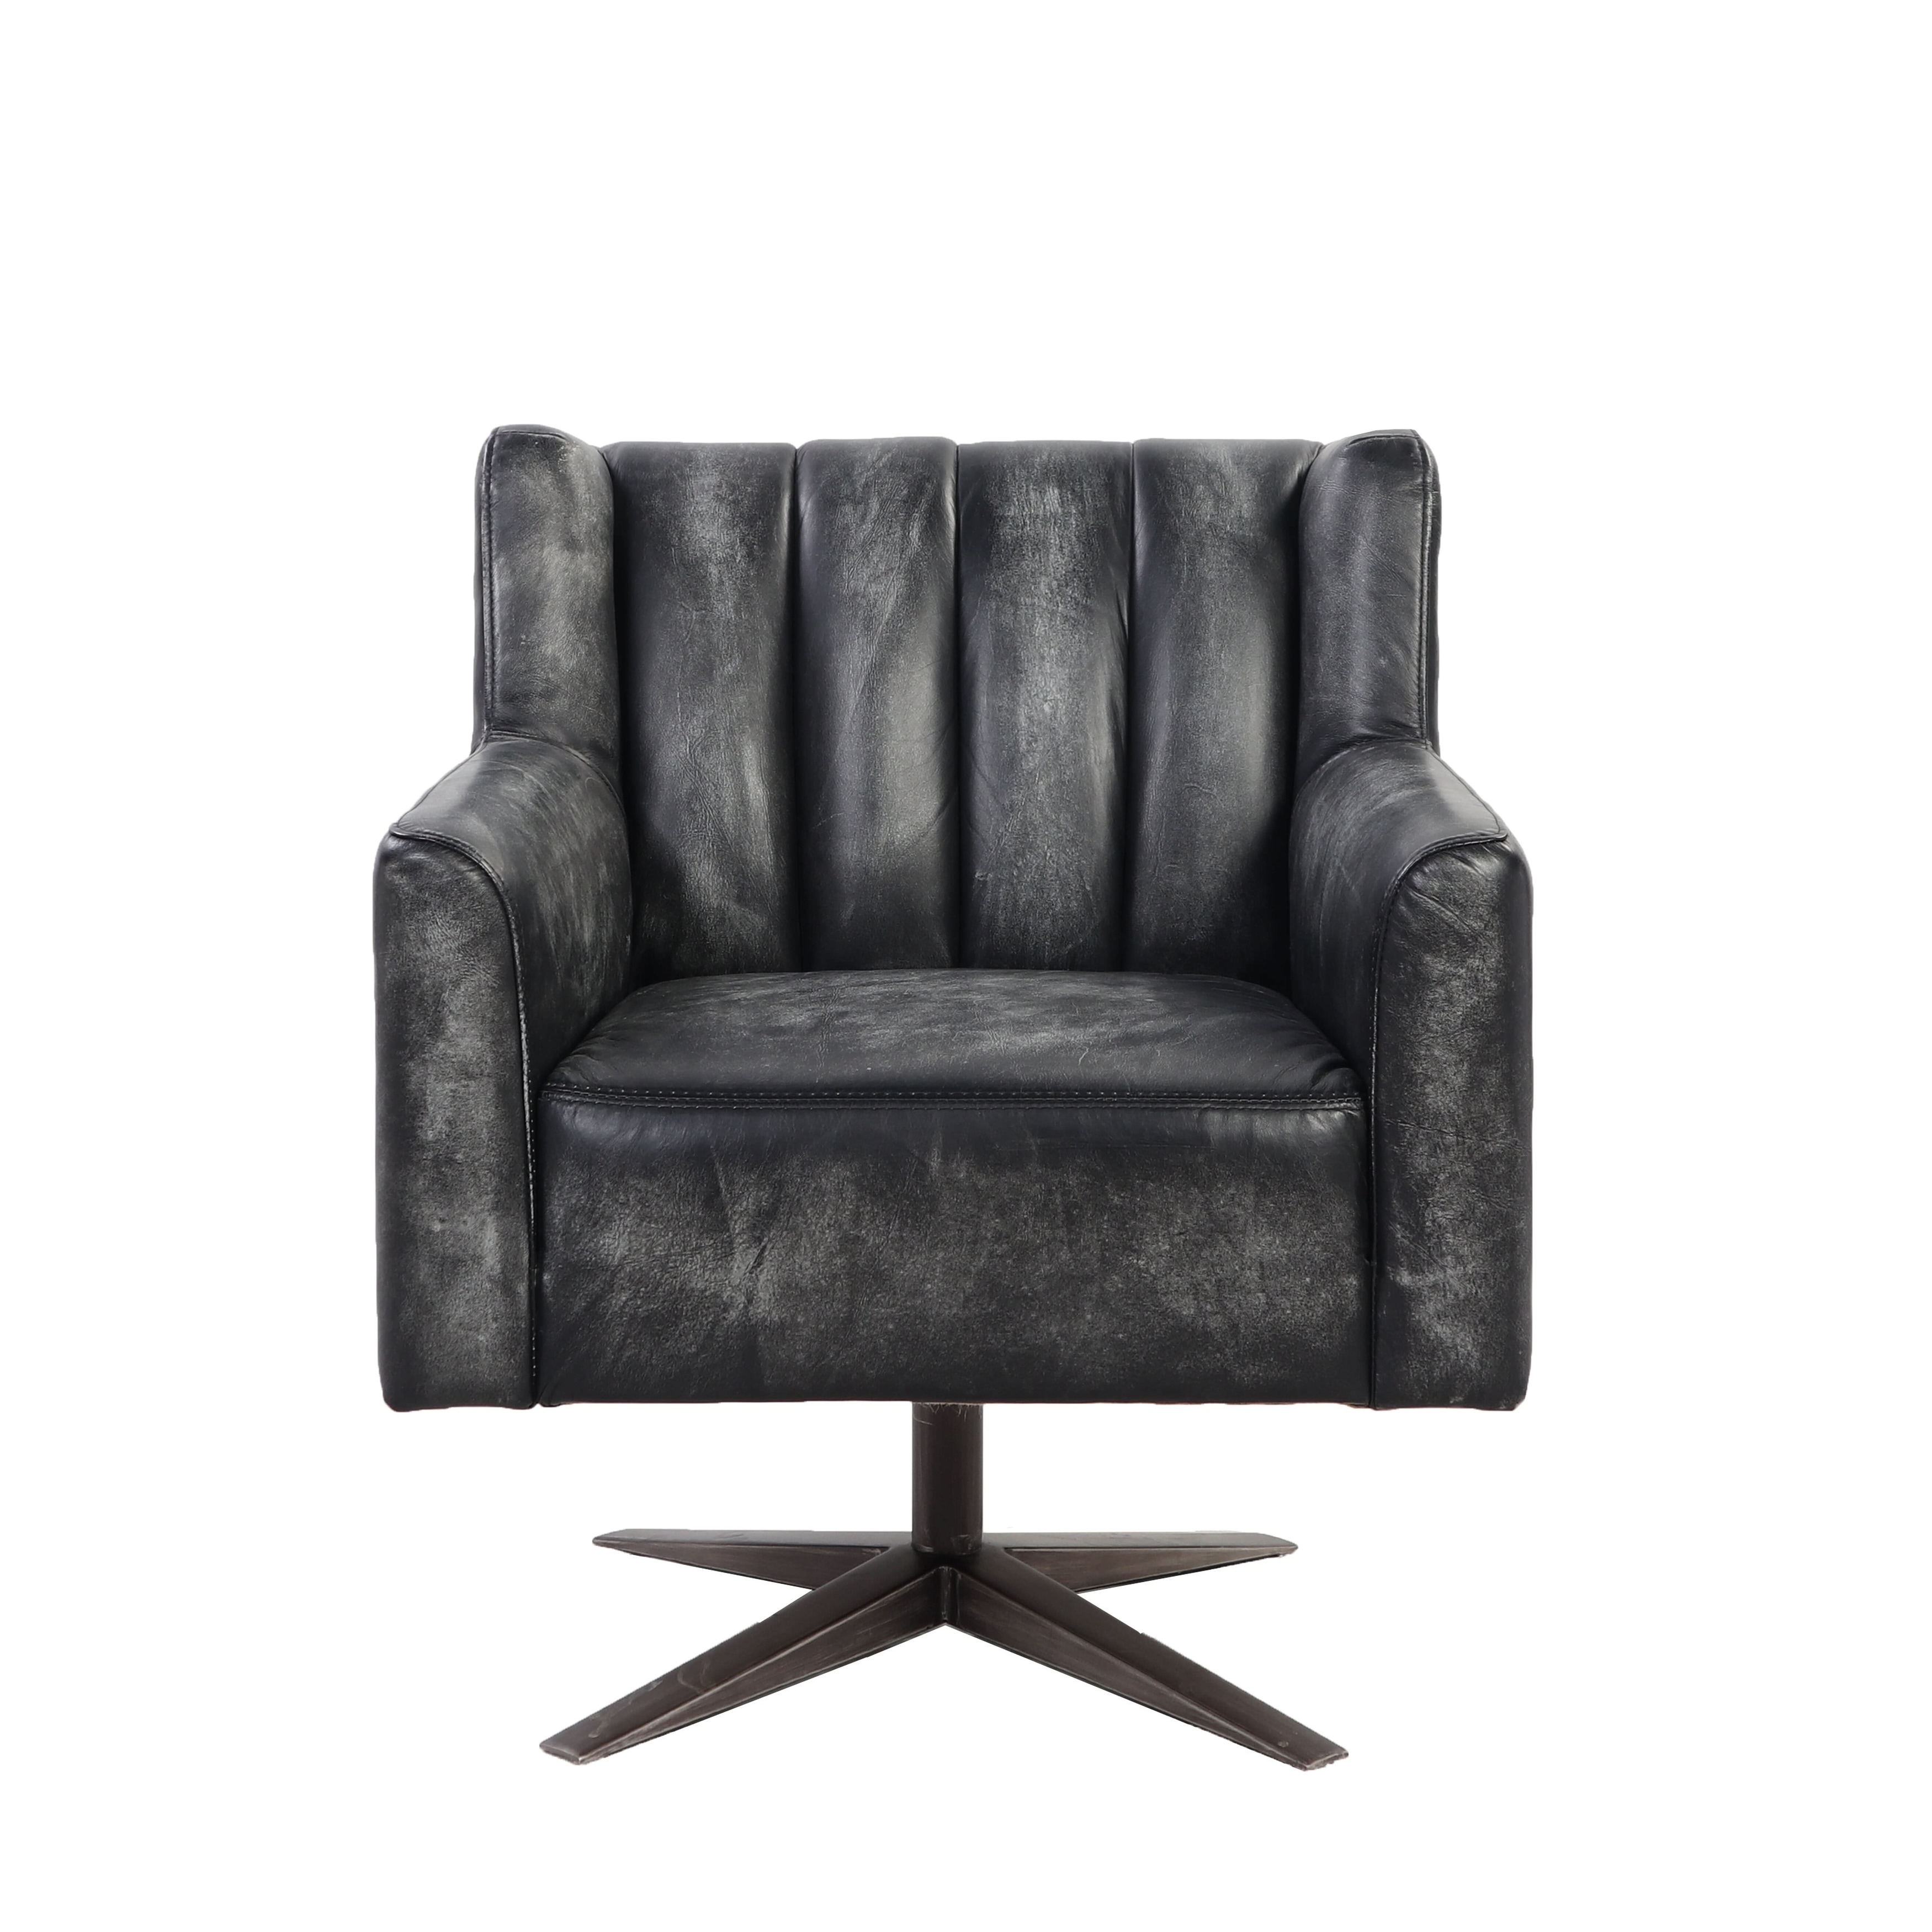 Brancaster Executive Office Chair In Vintage Black Top Grain Leather On Sale Overstock 27798495